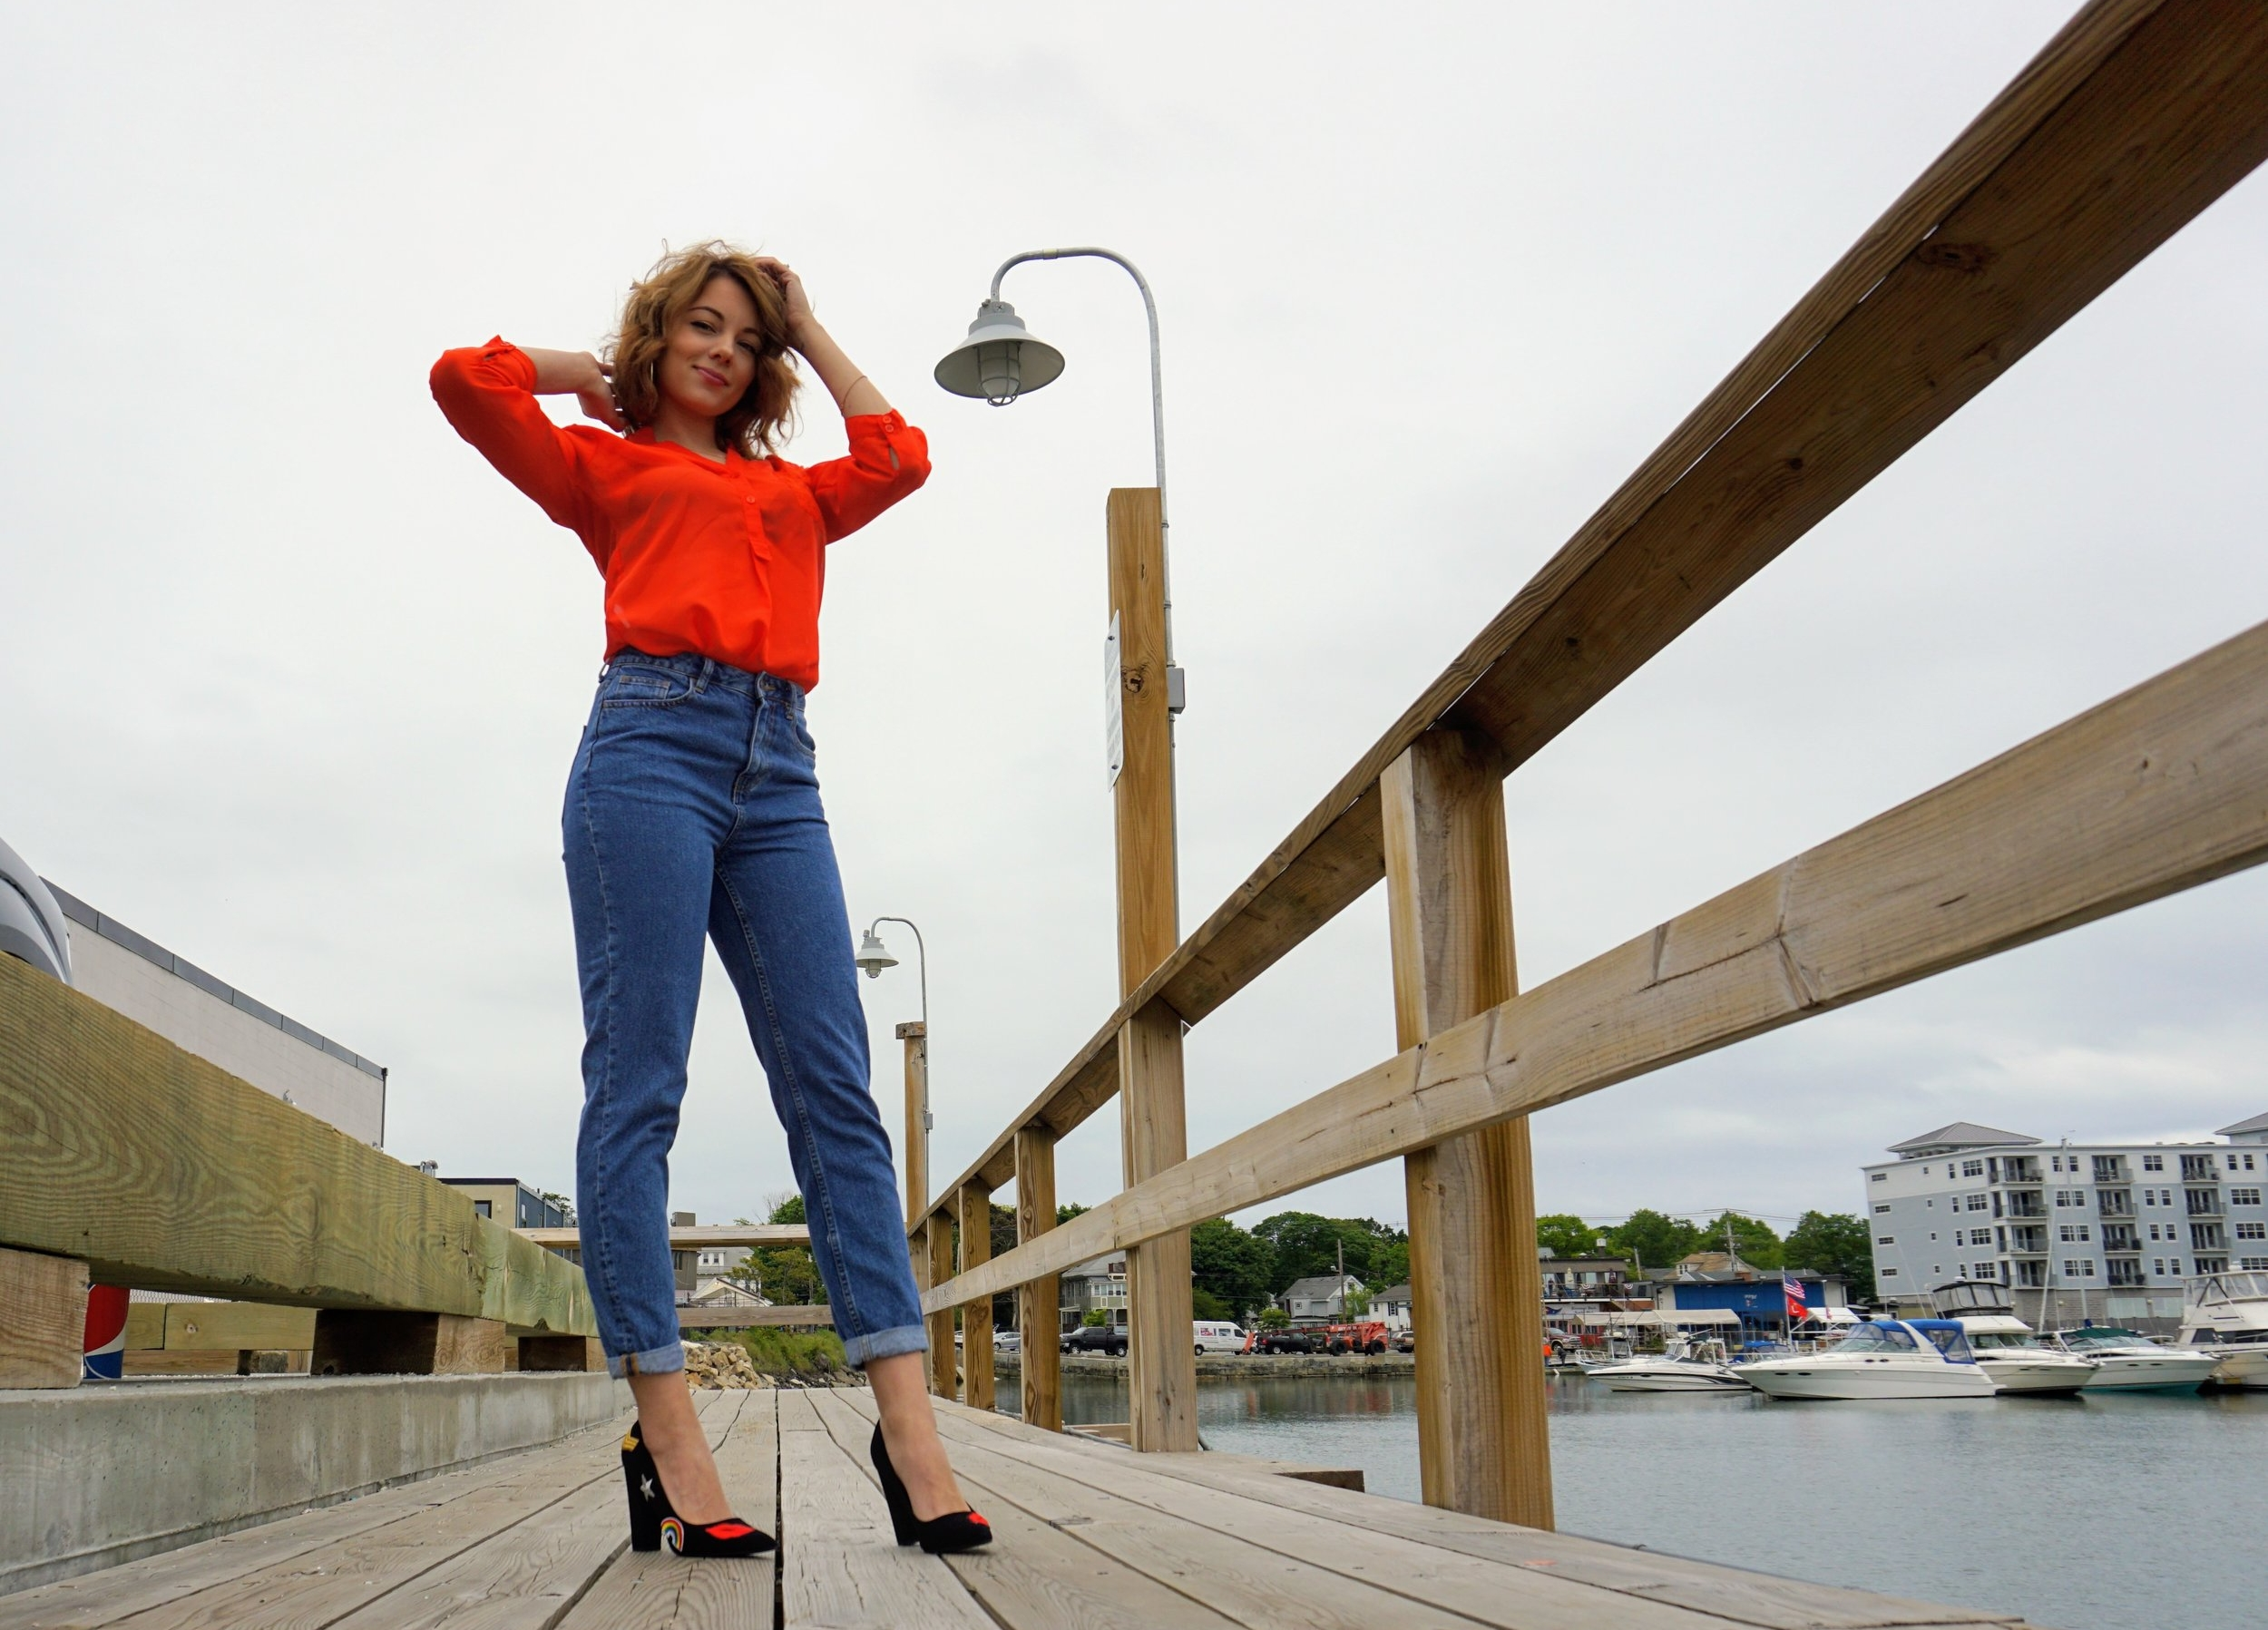 A blogger posing on the dock near the water, wearing a bright orange blouse, tucked in the mom jeans, and black heels with rainbows and hearts on them.